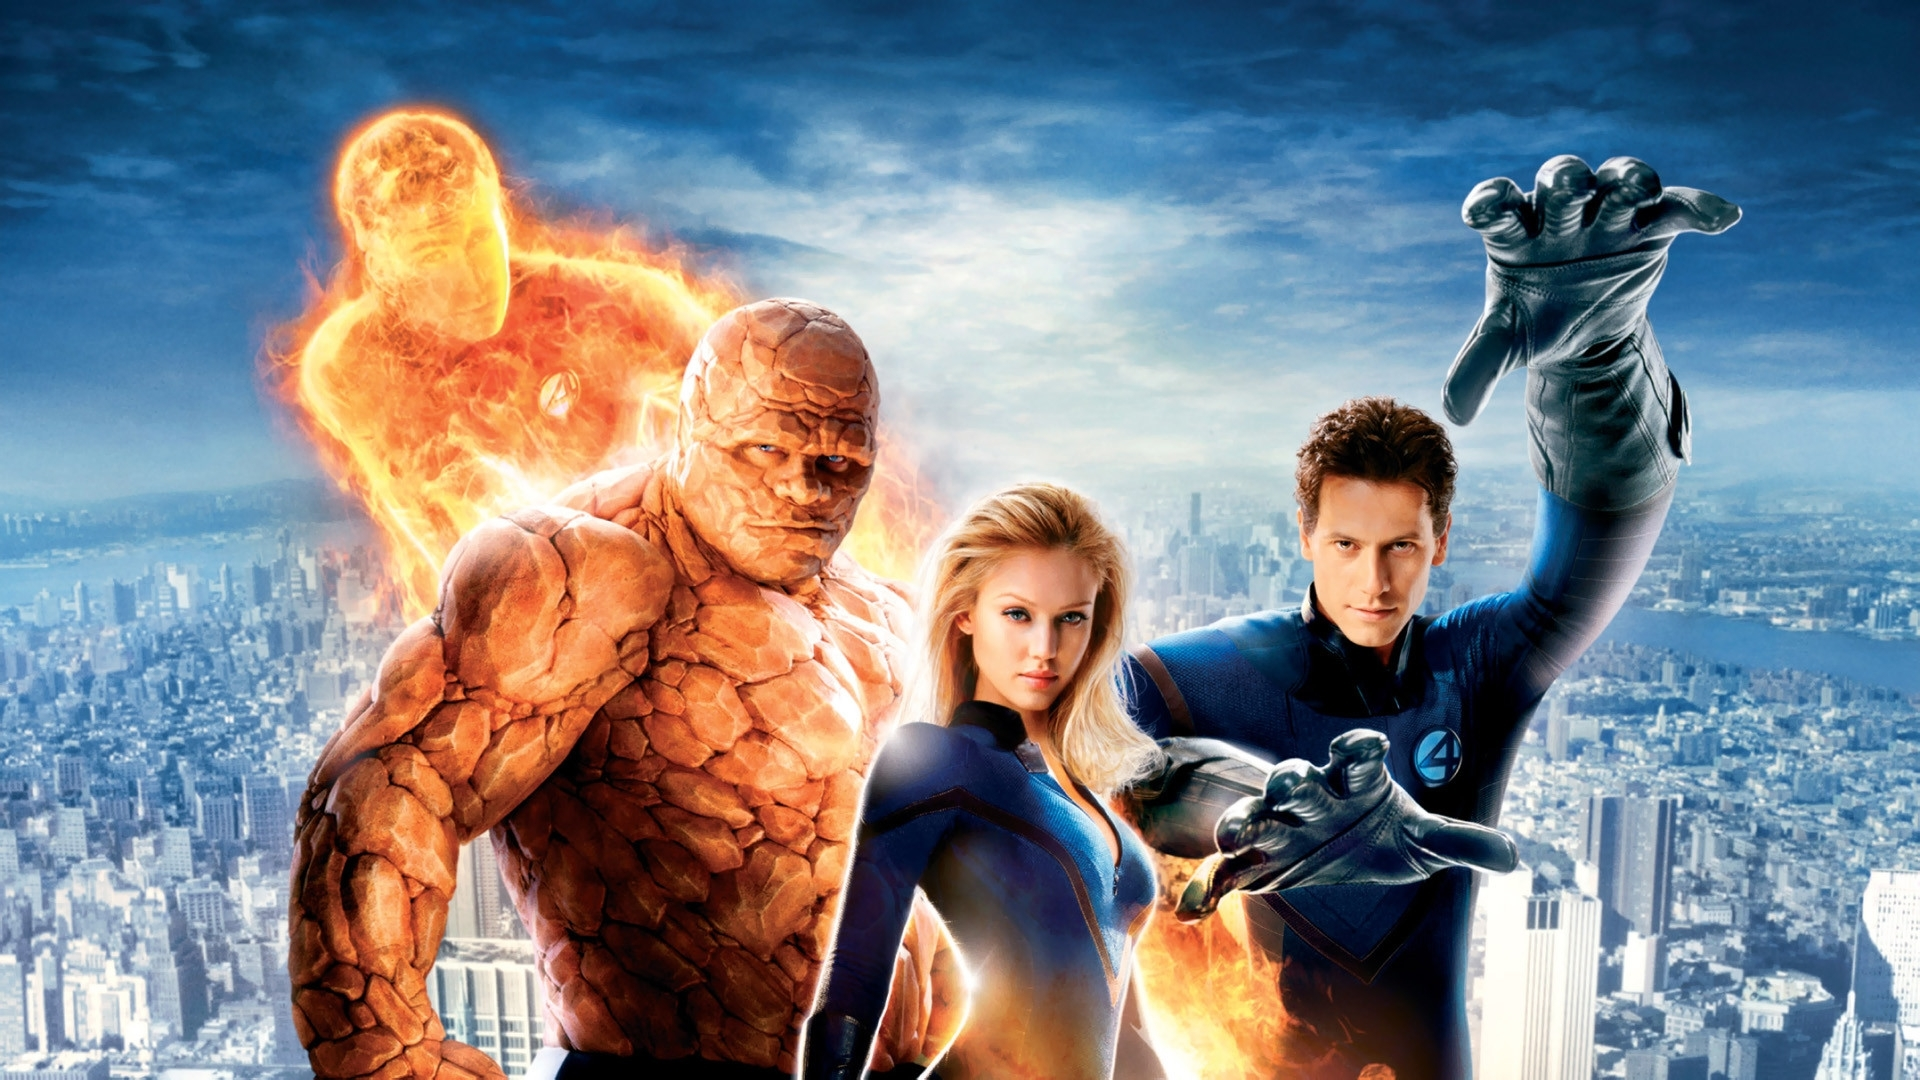 fantastic 4 marvel superheroes team